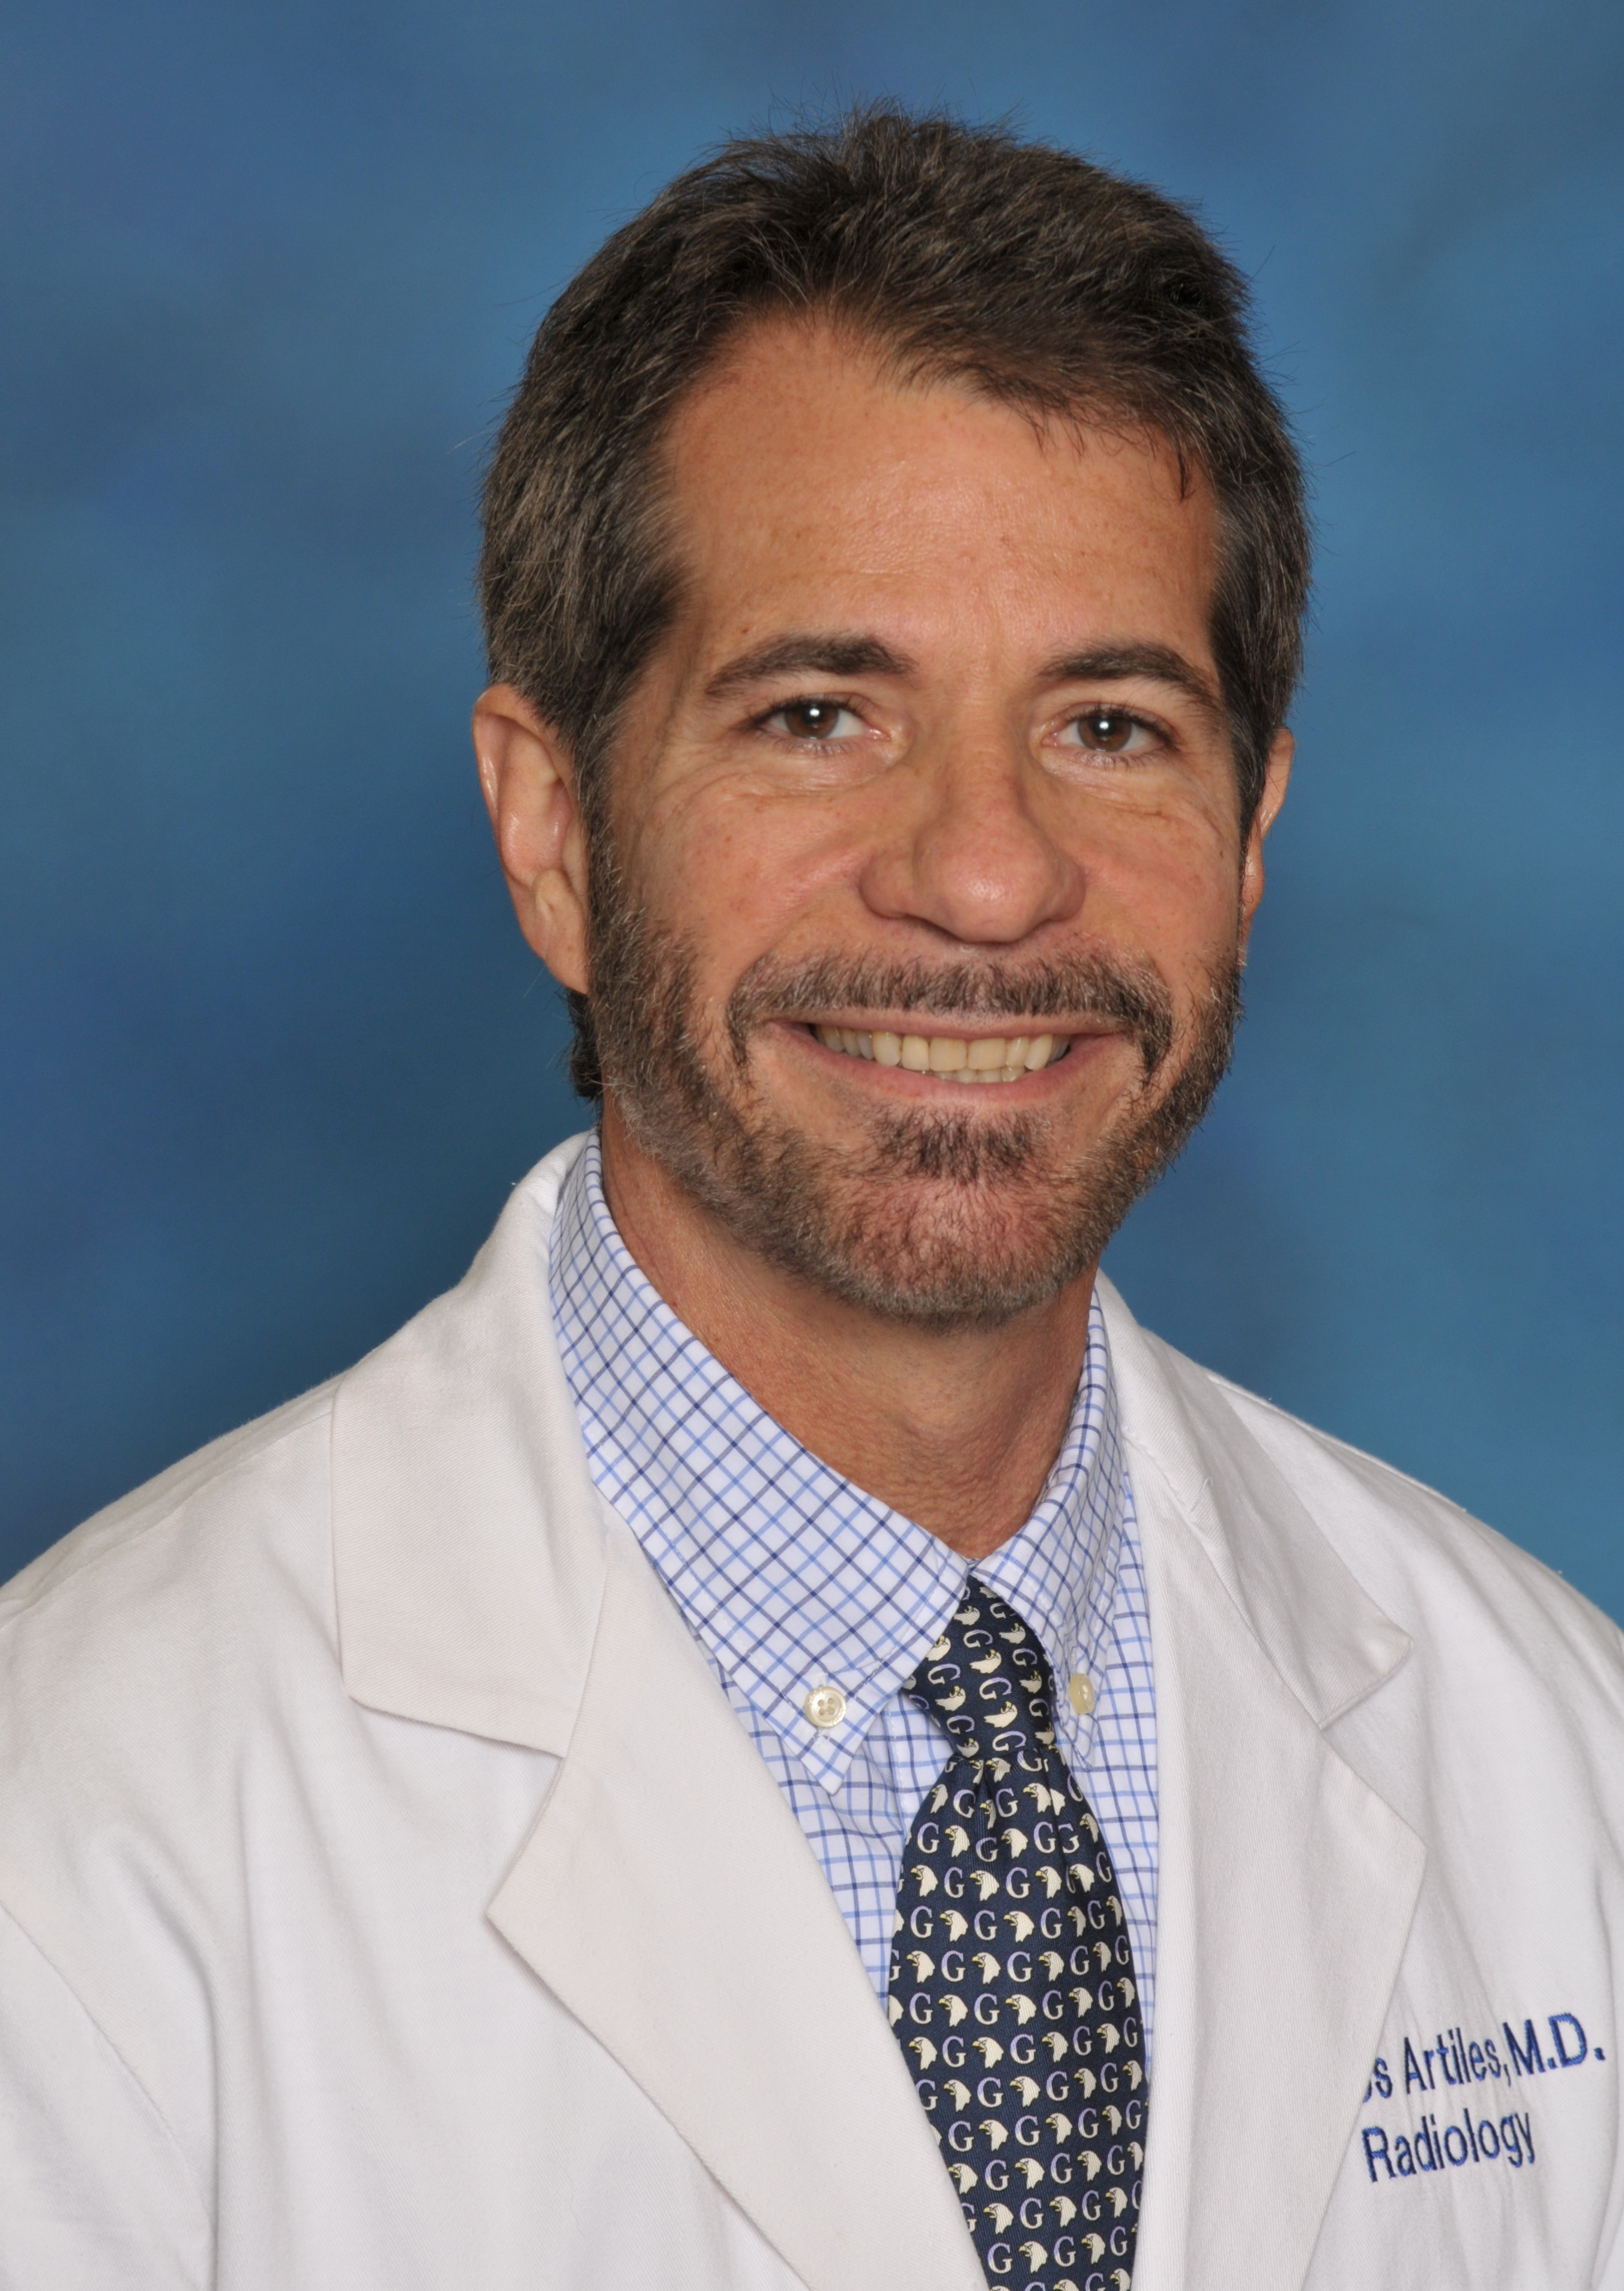 Carlos Artiles, MD - Specializing in neuroradiology; MRI - Body, musculoskeletal, prostate imaging